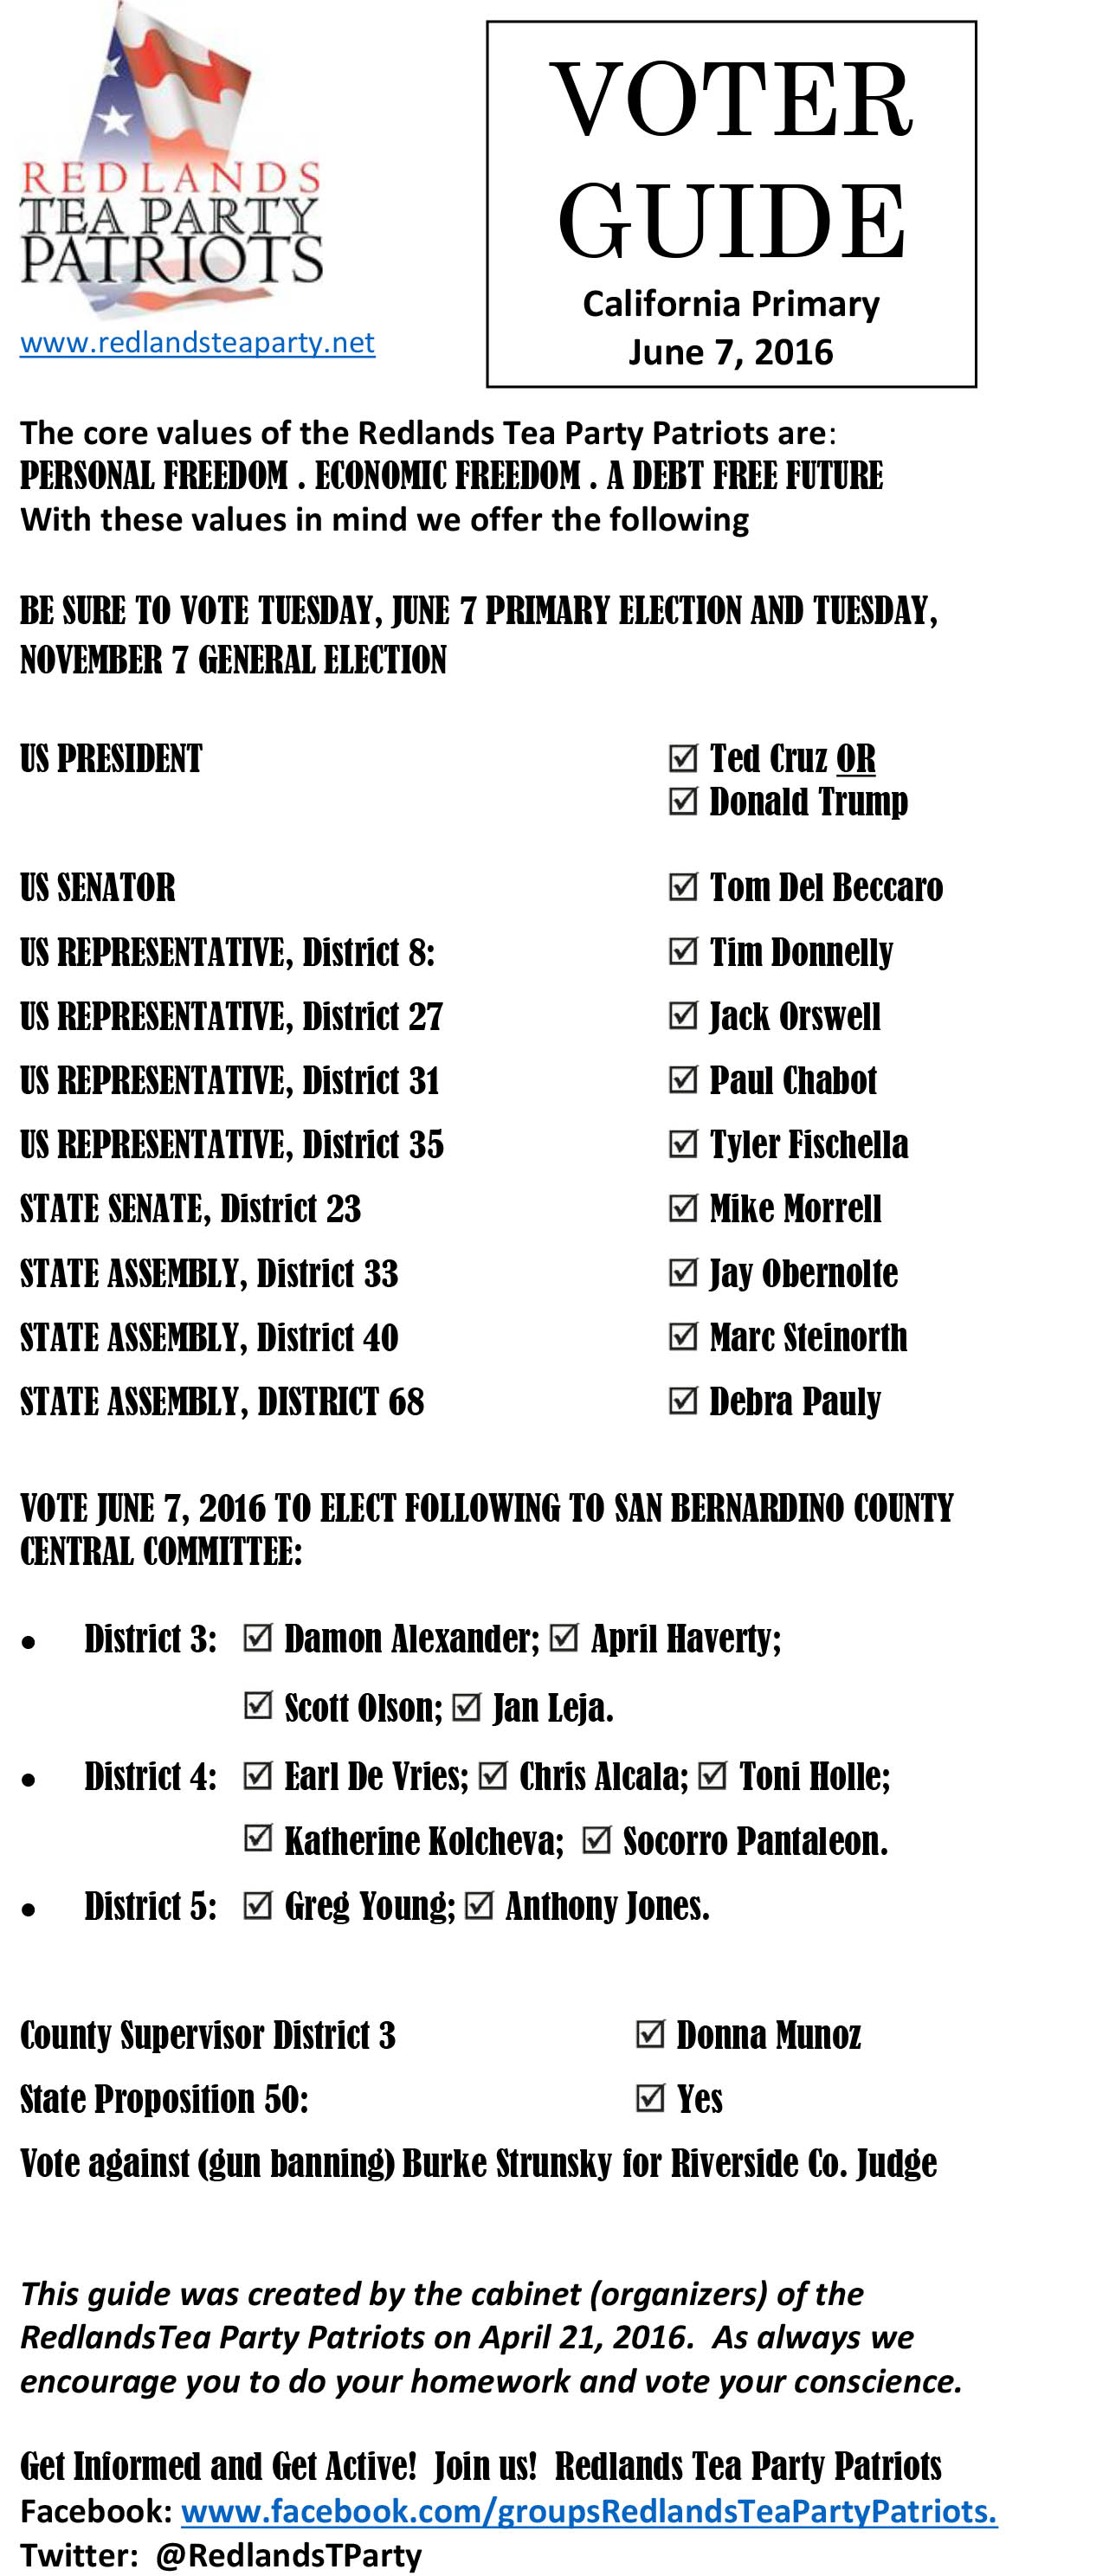 voter guide half page-1